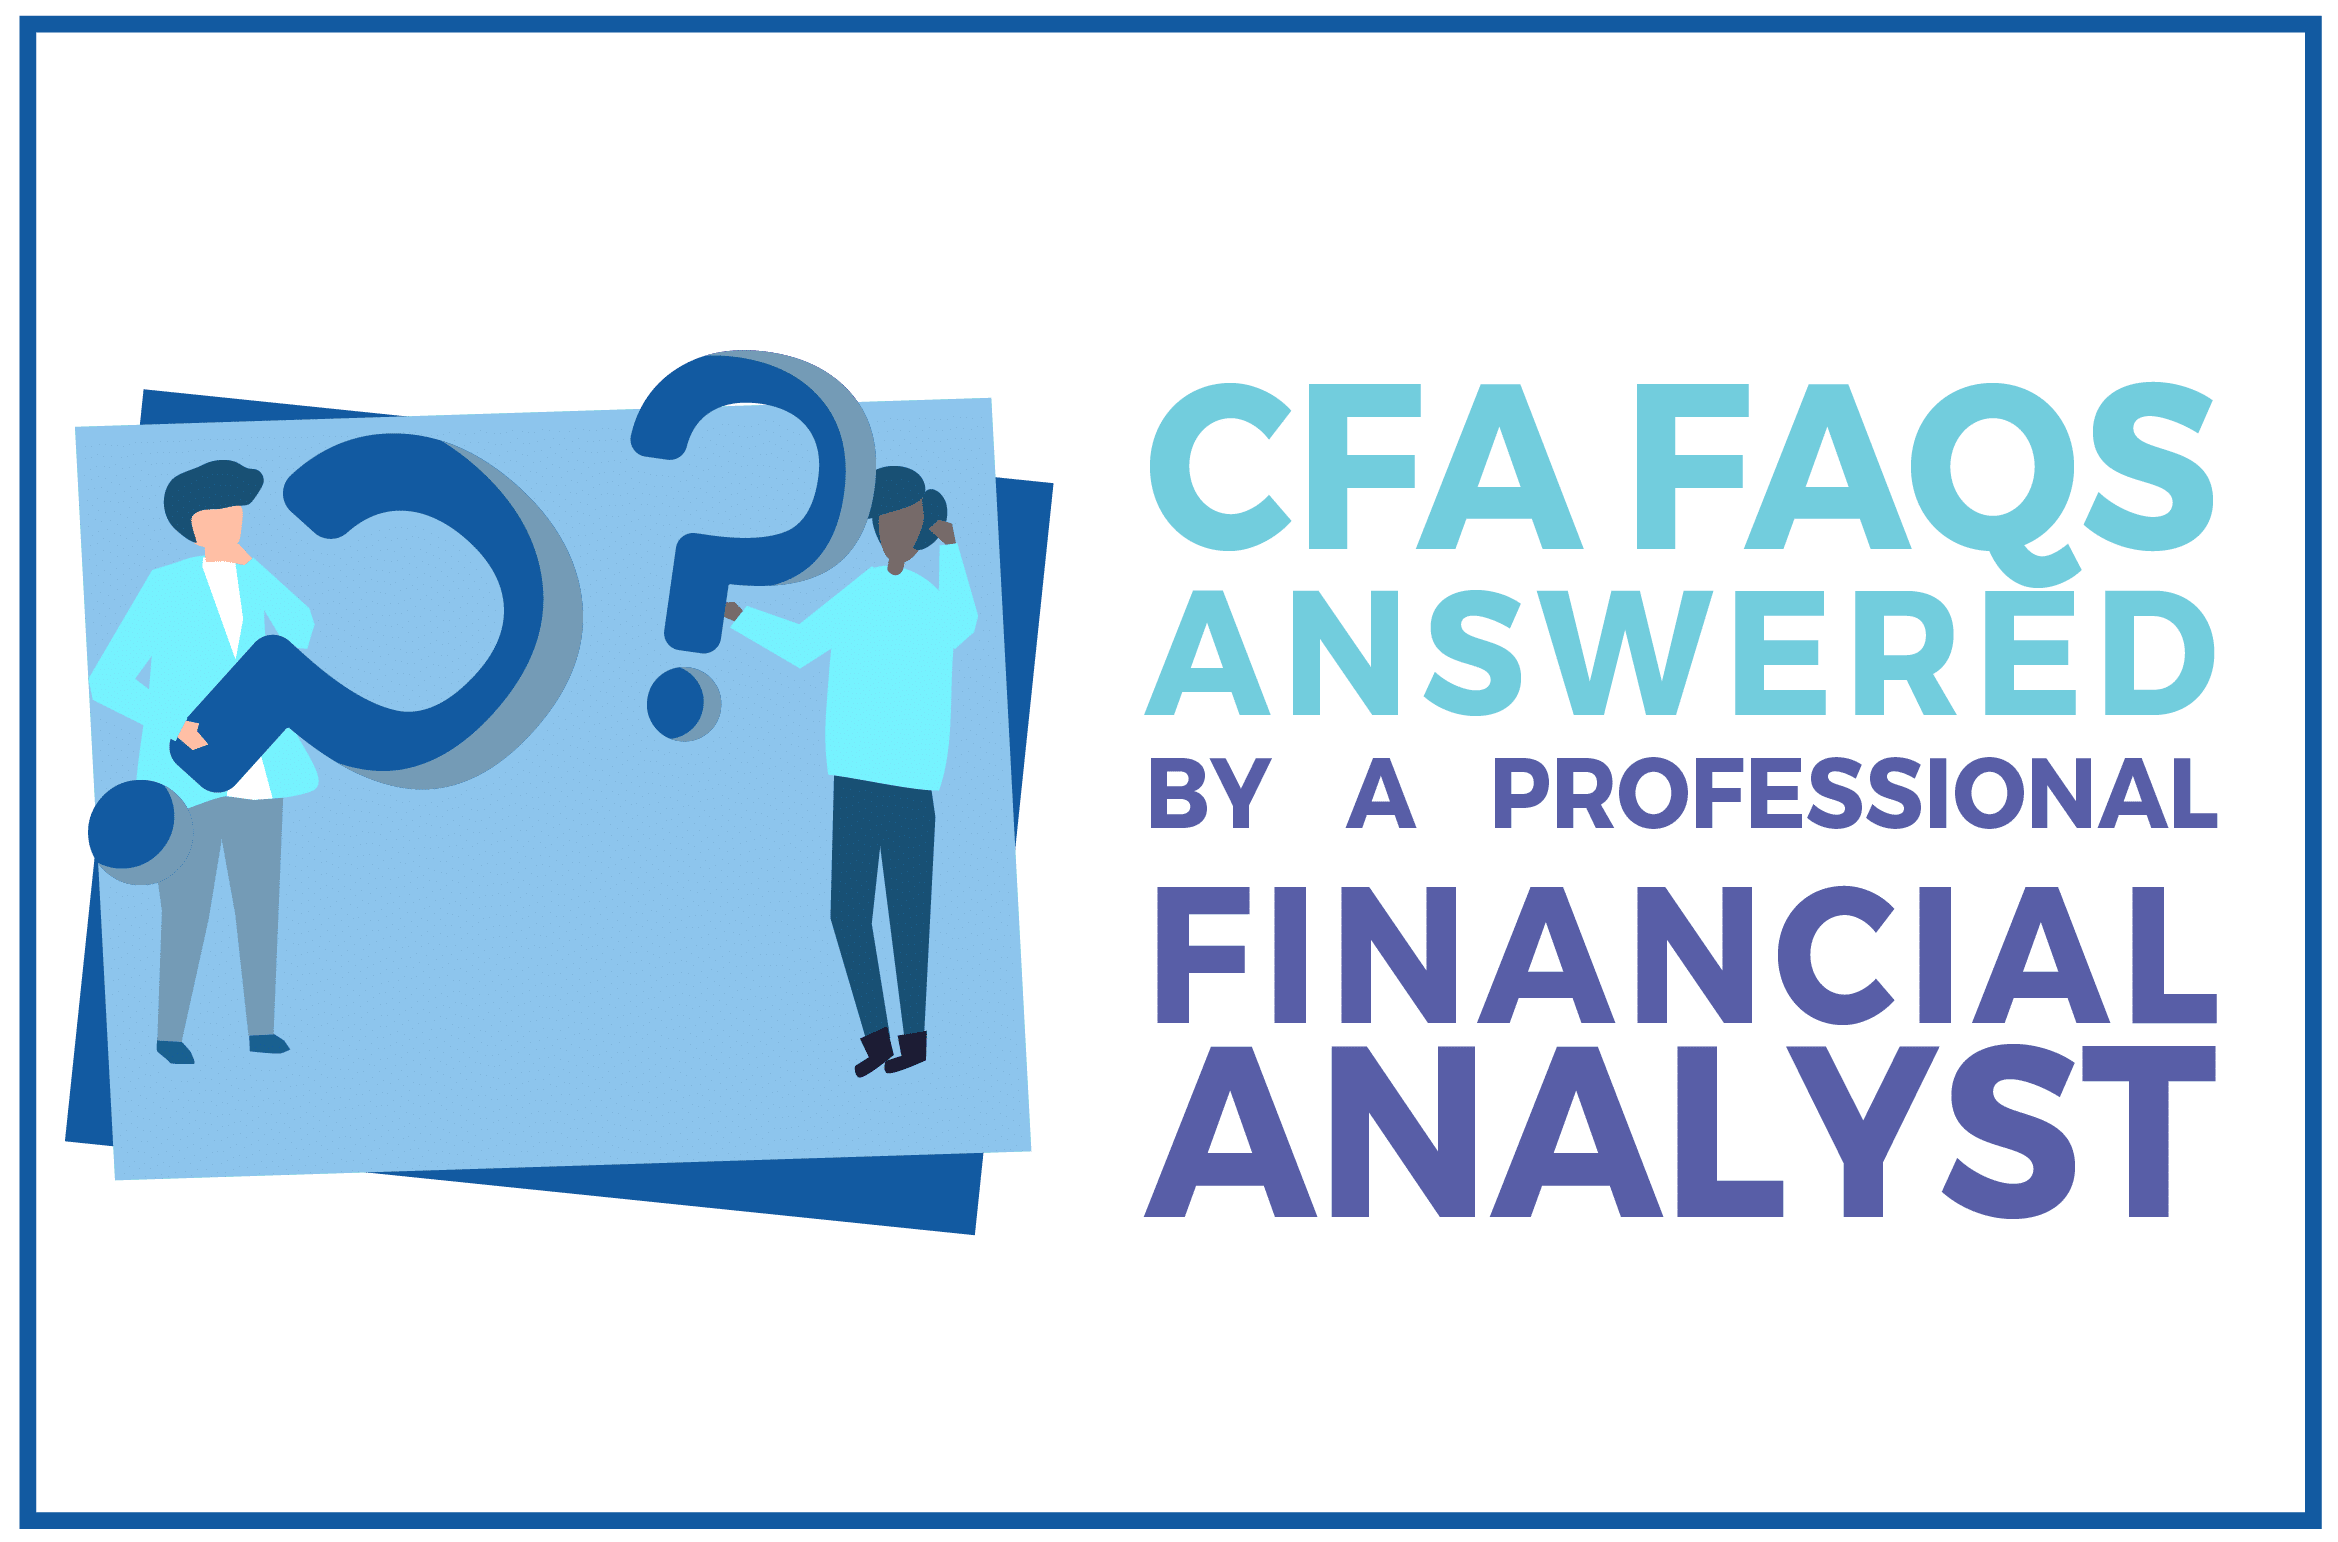 CFA FAQs Answered by a Financial Analyst